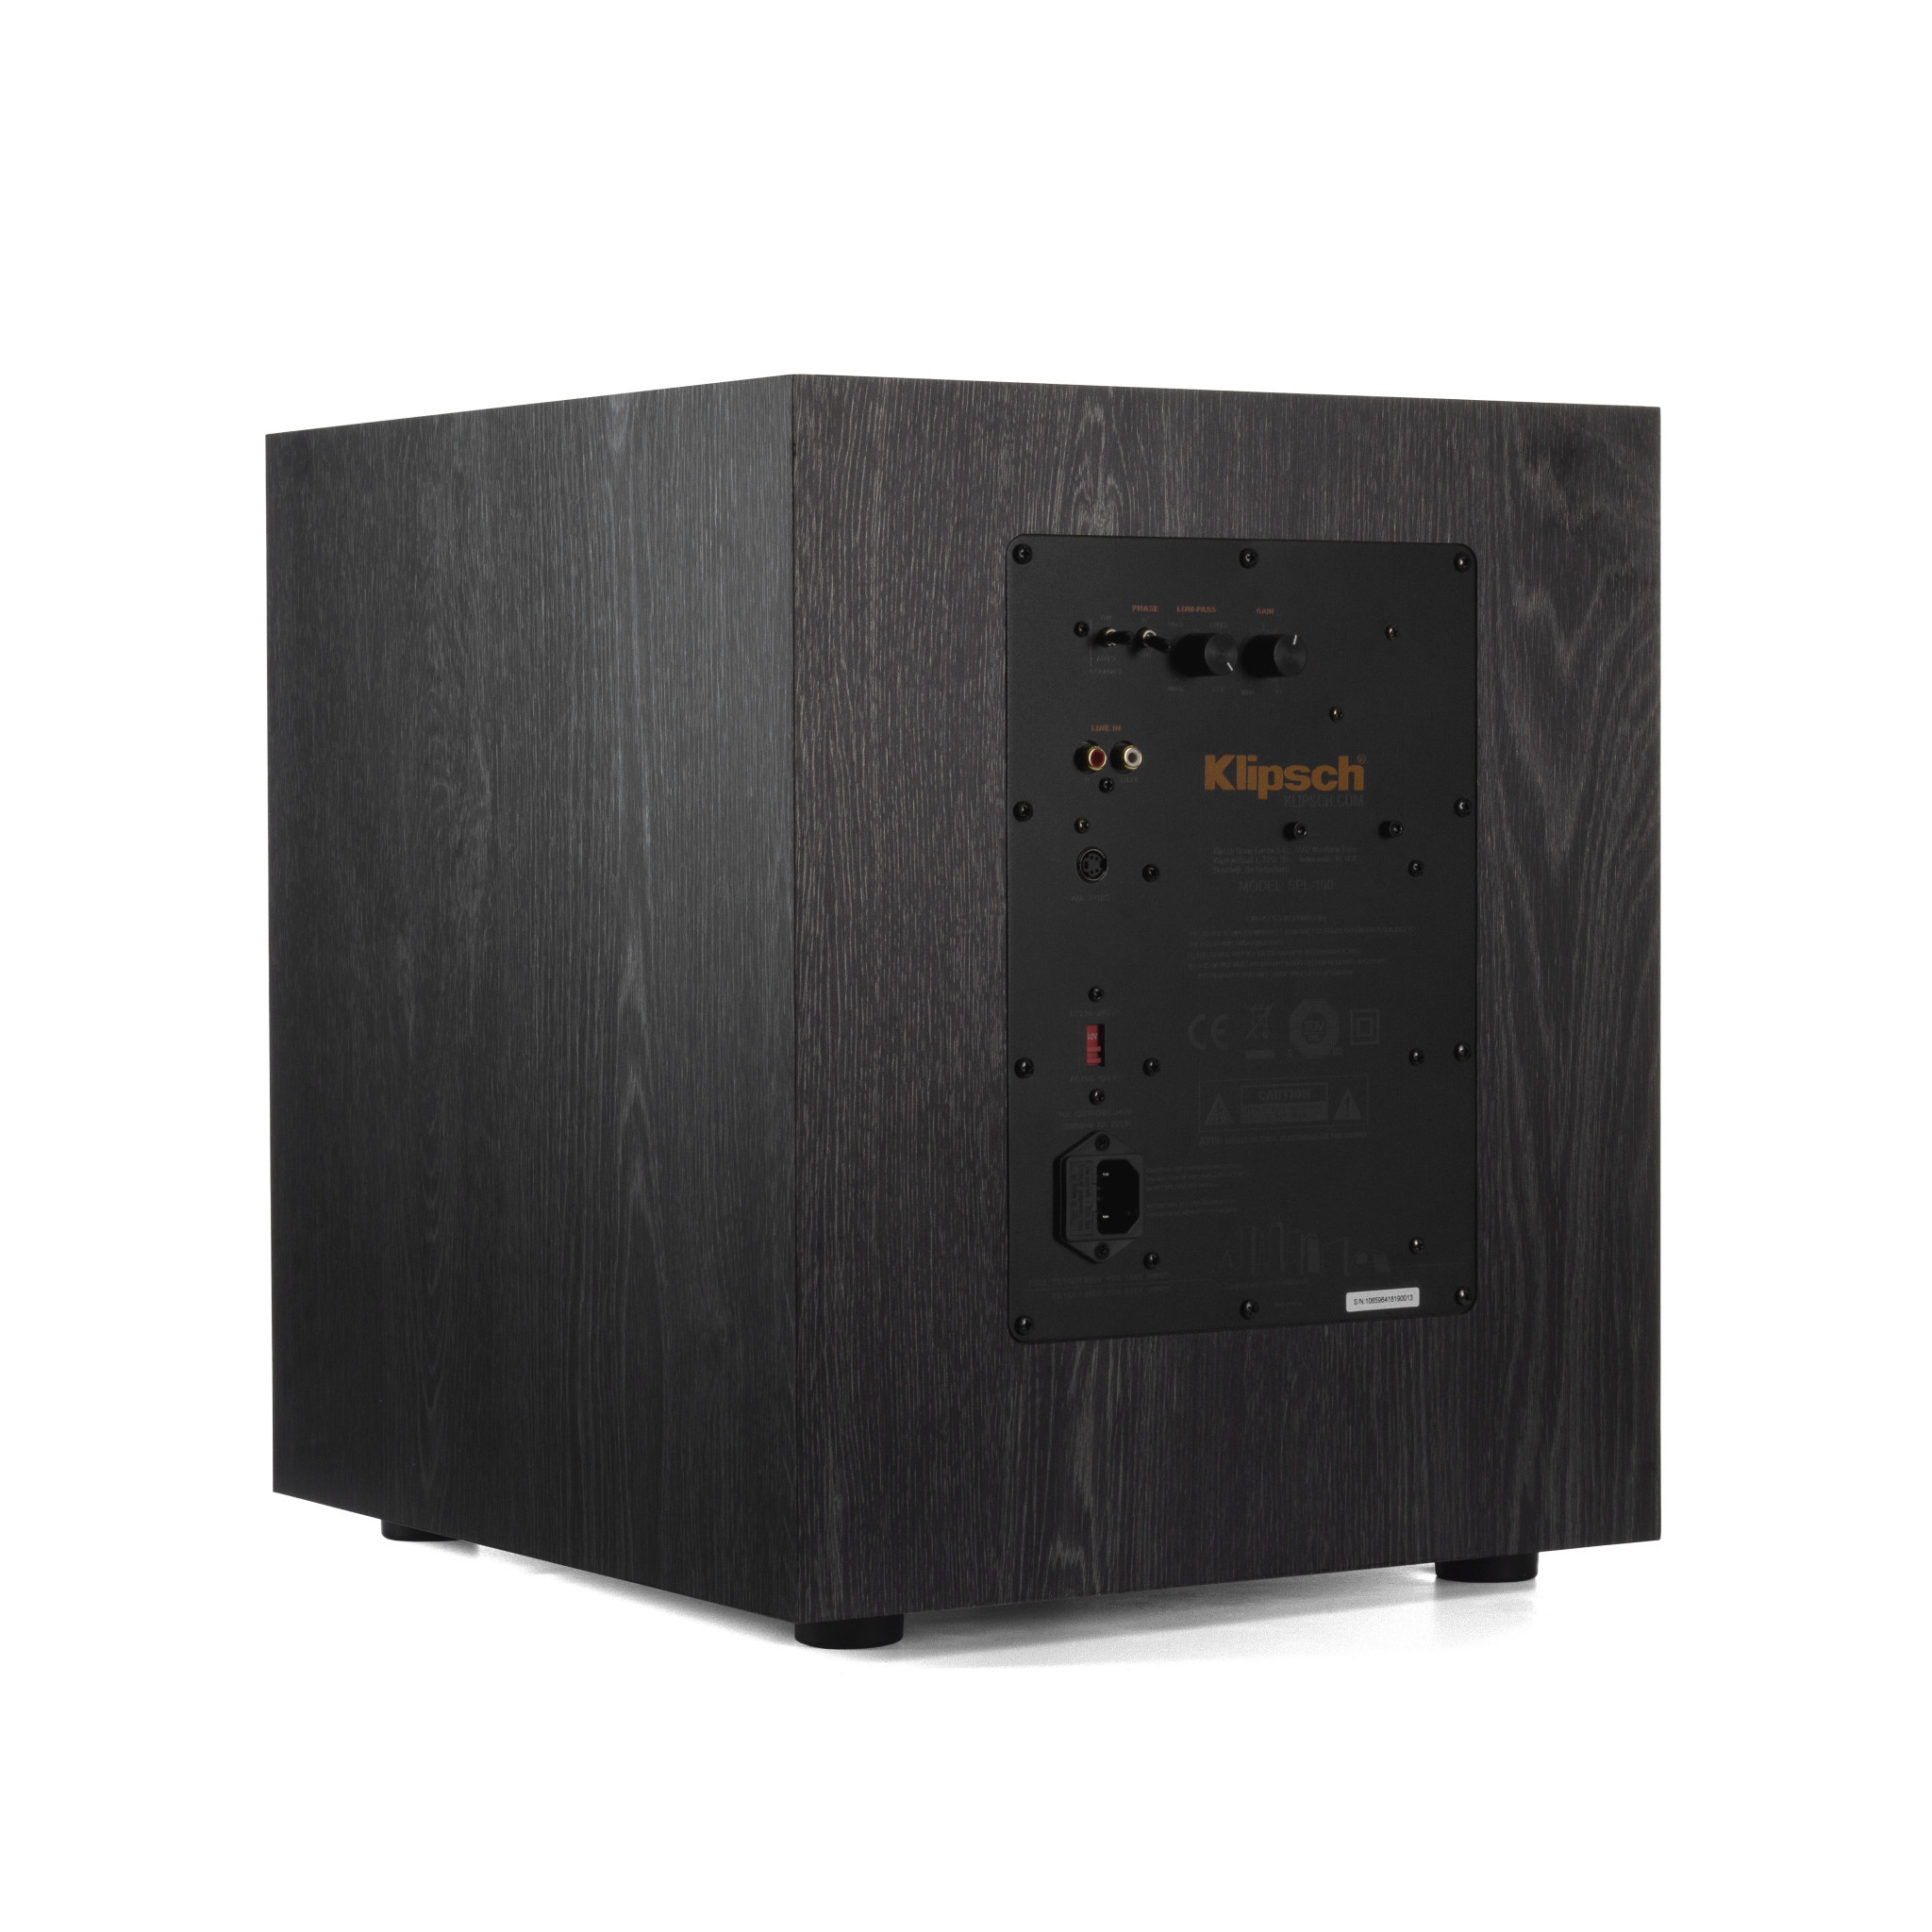 "Klipsch Klipsch SPL-100 10"" Powered Subwoofer"